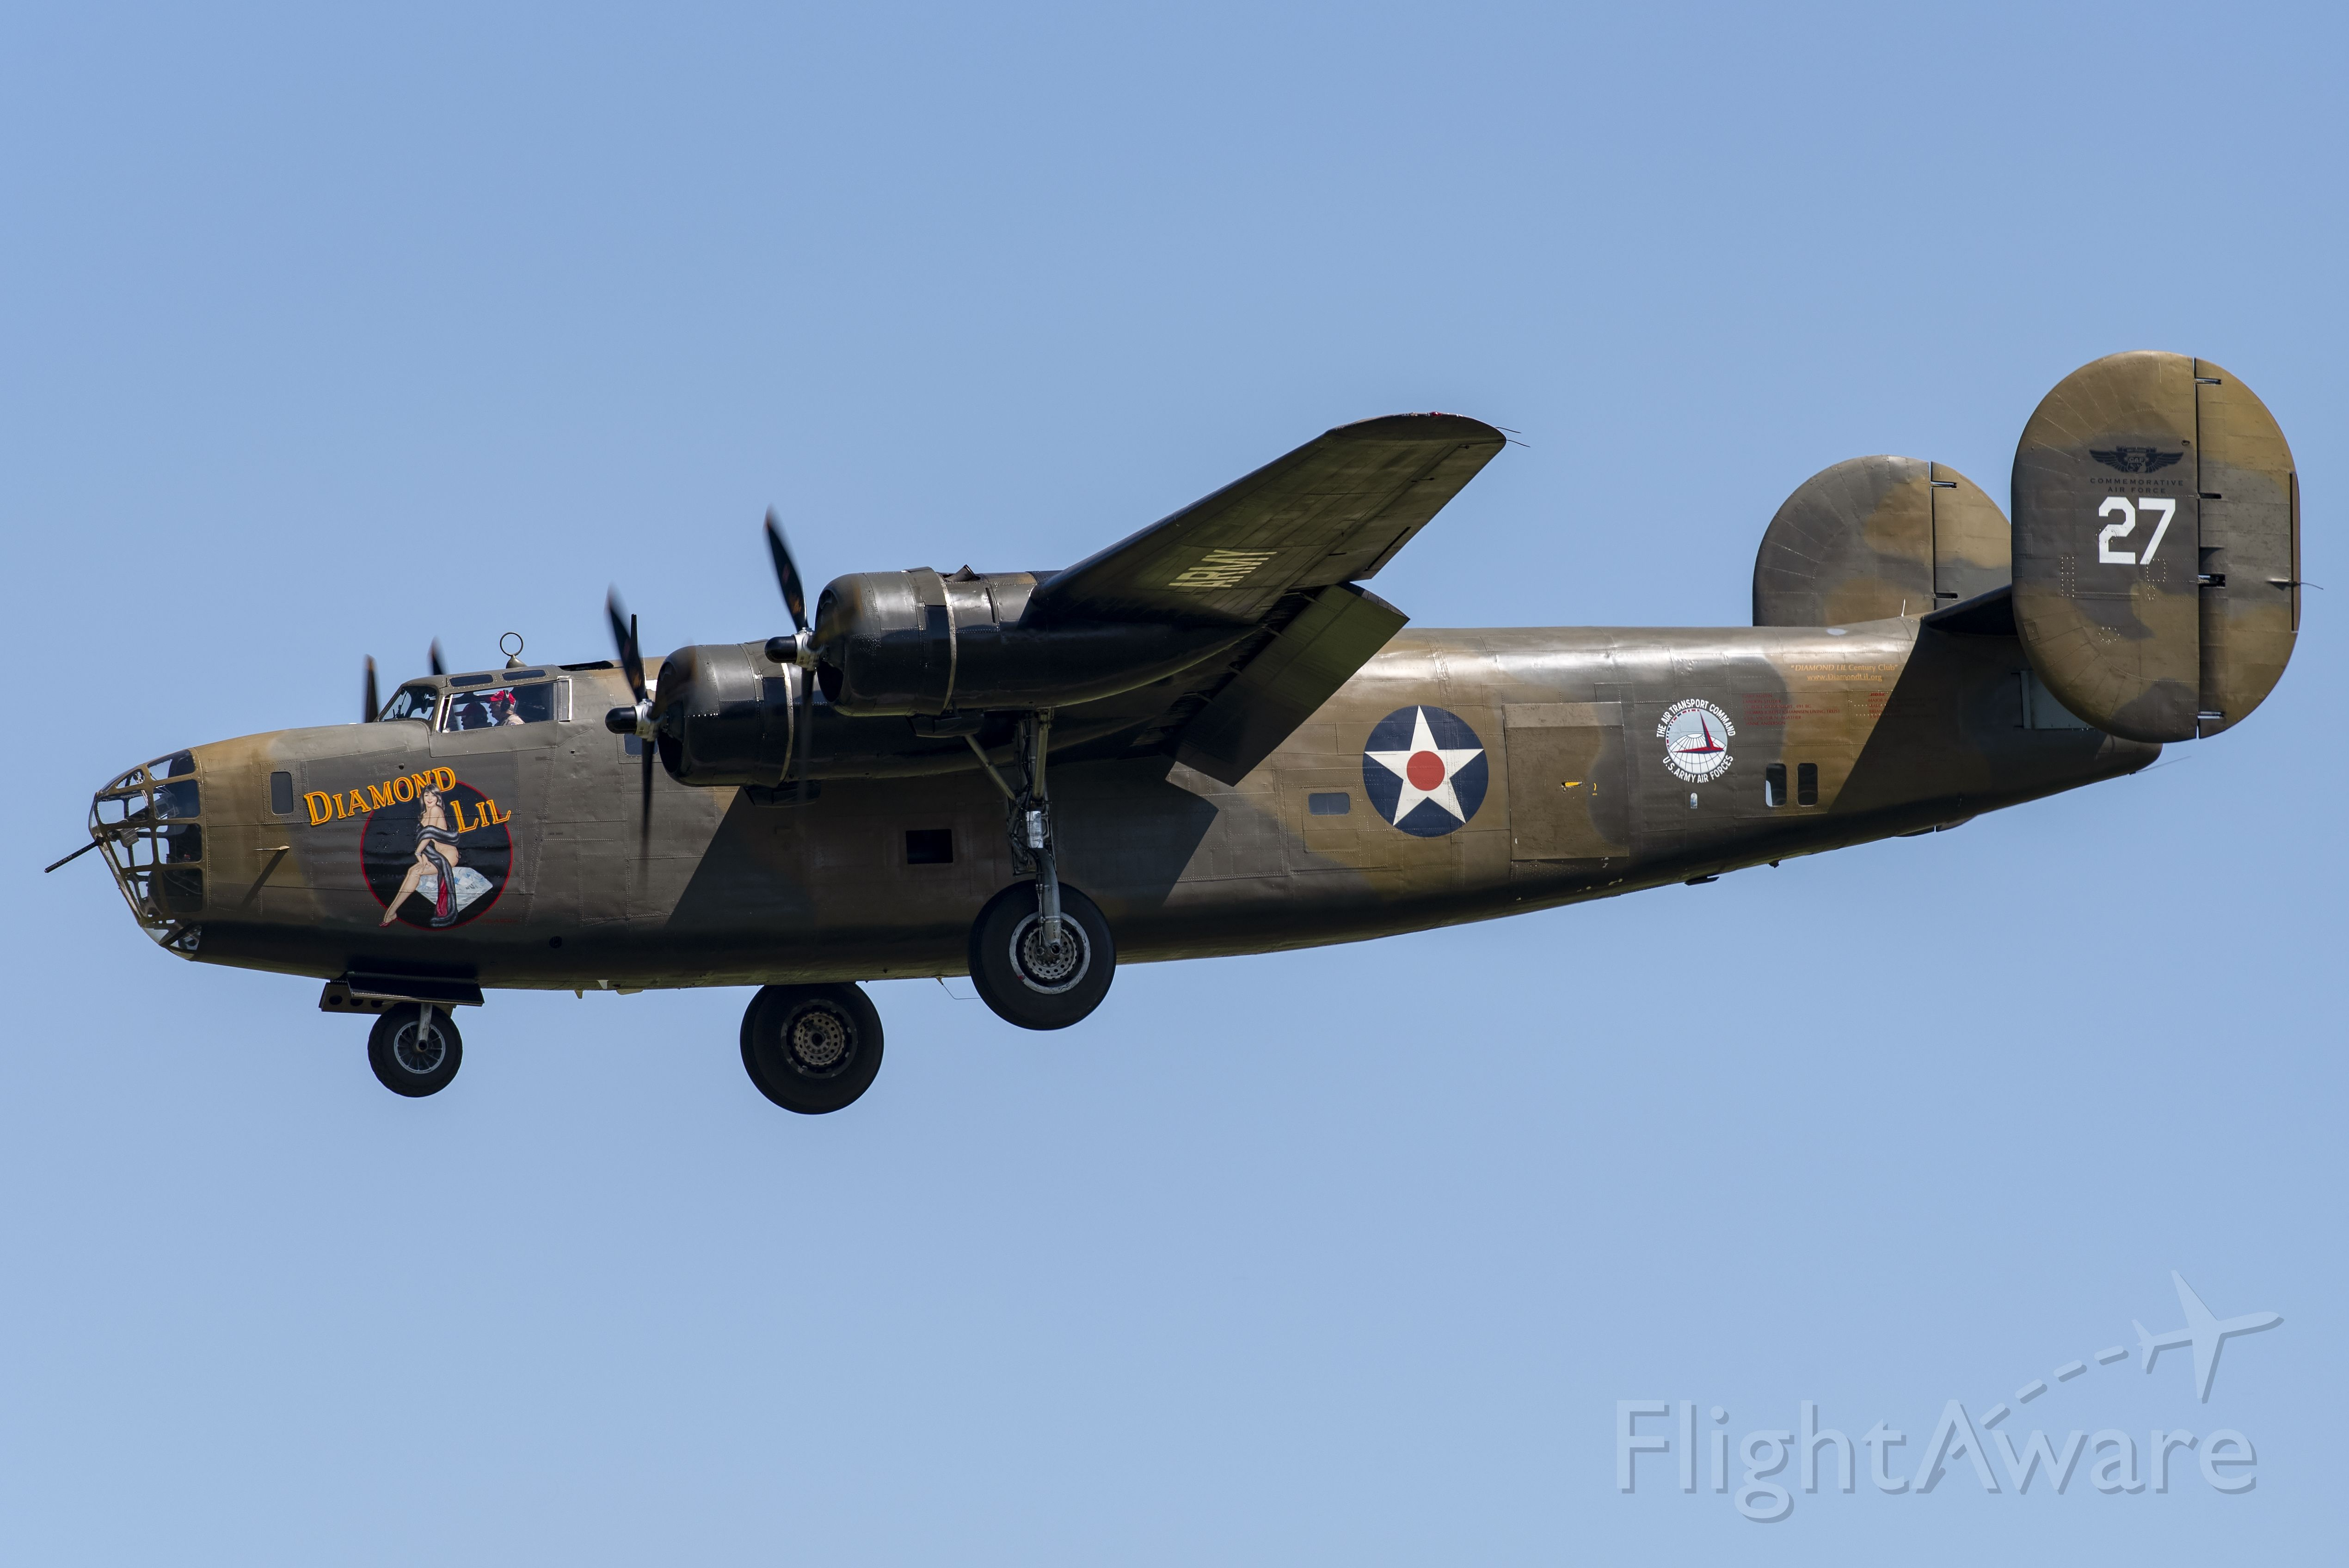 """Consolidated B-24 Liberator (N24927) - Commemorative Air Force's """"Diamond Lil"""" on a local training flight."""